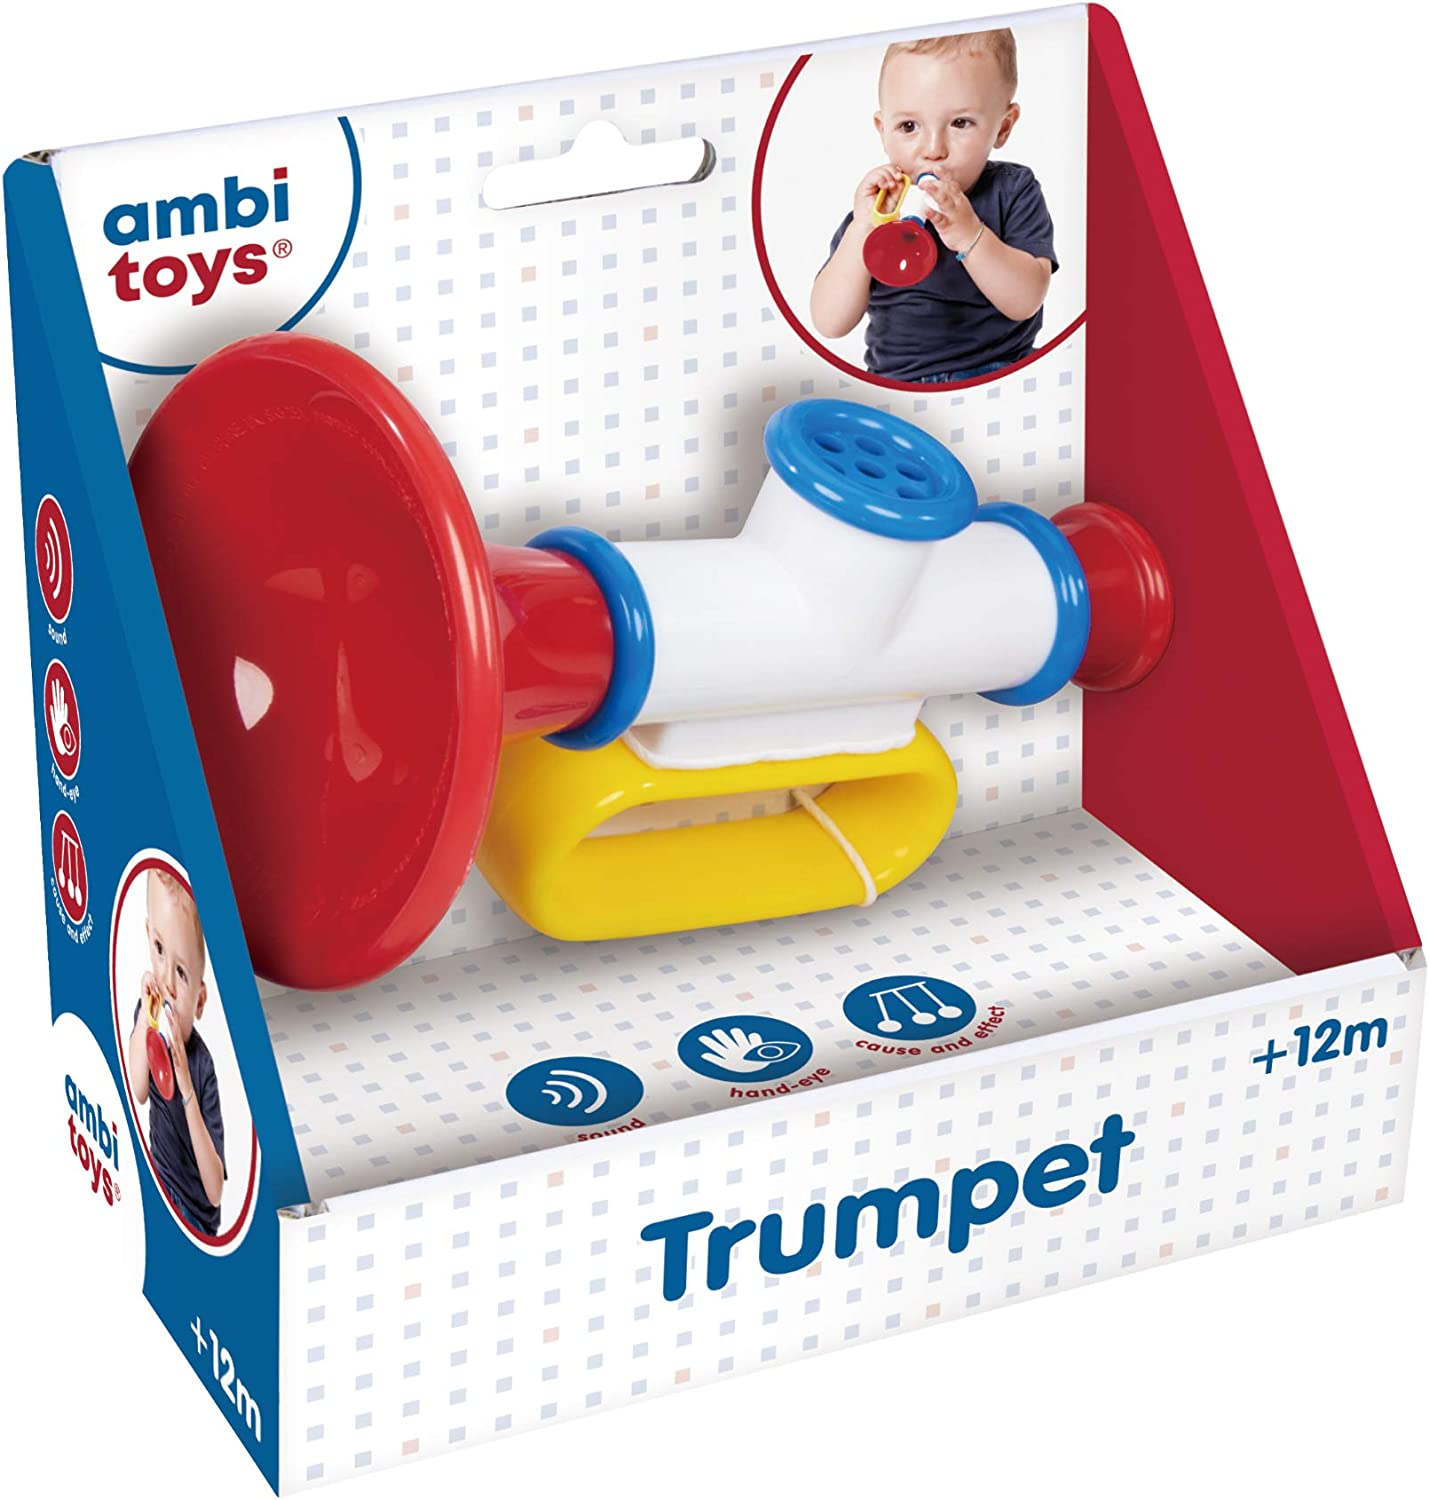 Ambi Toys, Trumpet, Musical Baby Toys, Ages 12 months+